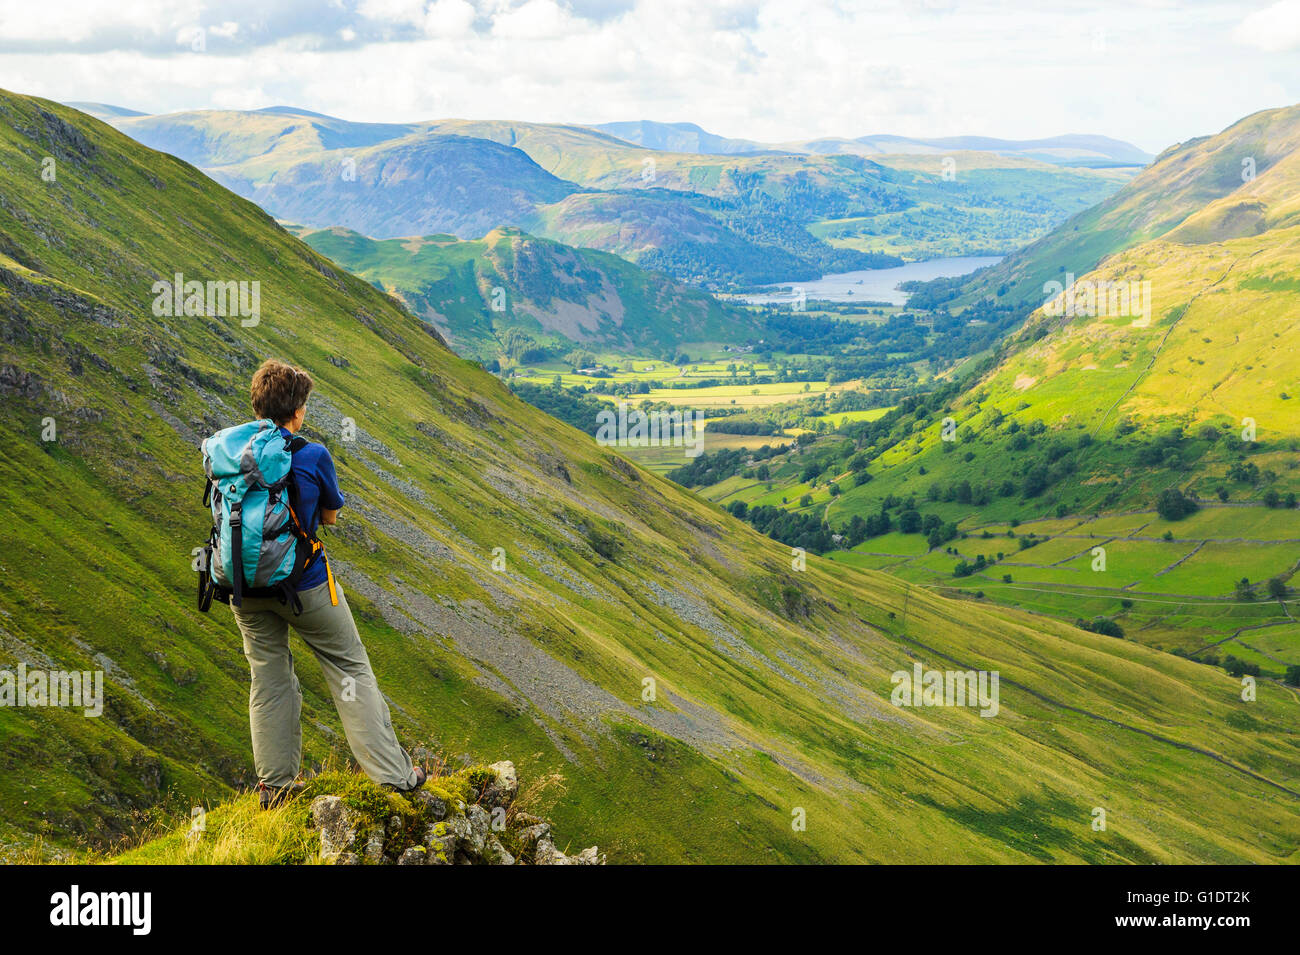 Walker overlooks Hartsop valley from above Raven Crag Threshthwaite in the Lake District, with Ullswater in the - Stock Image